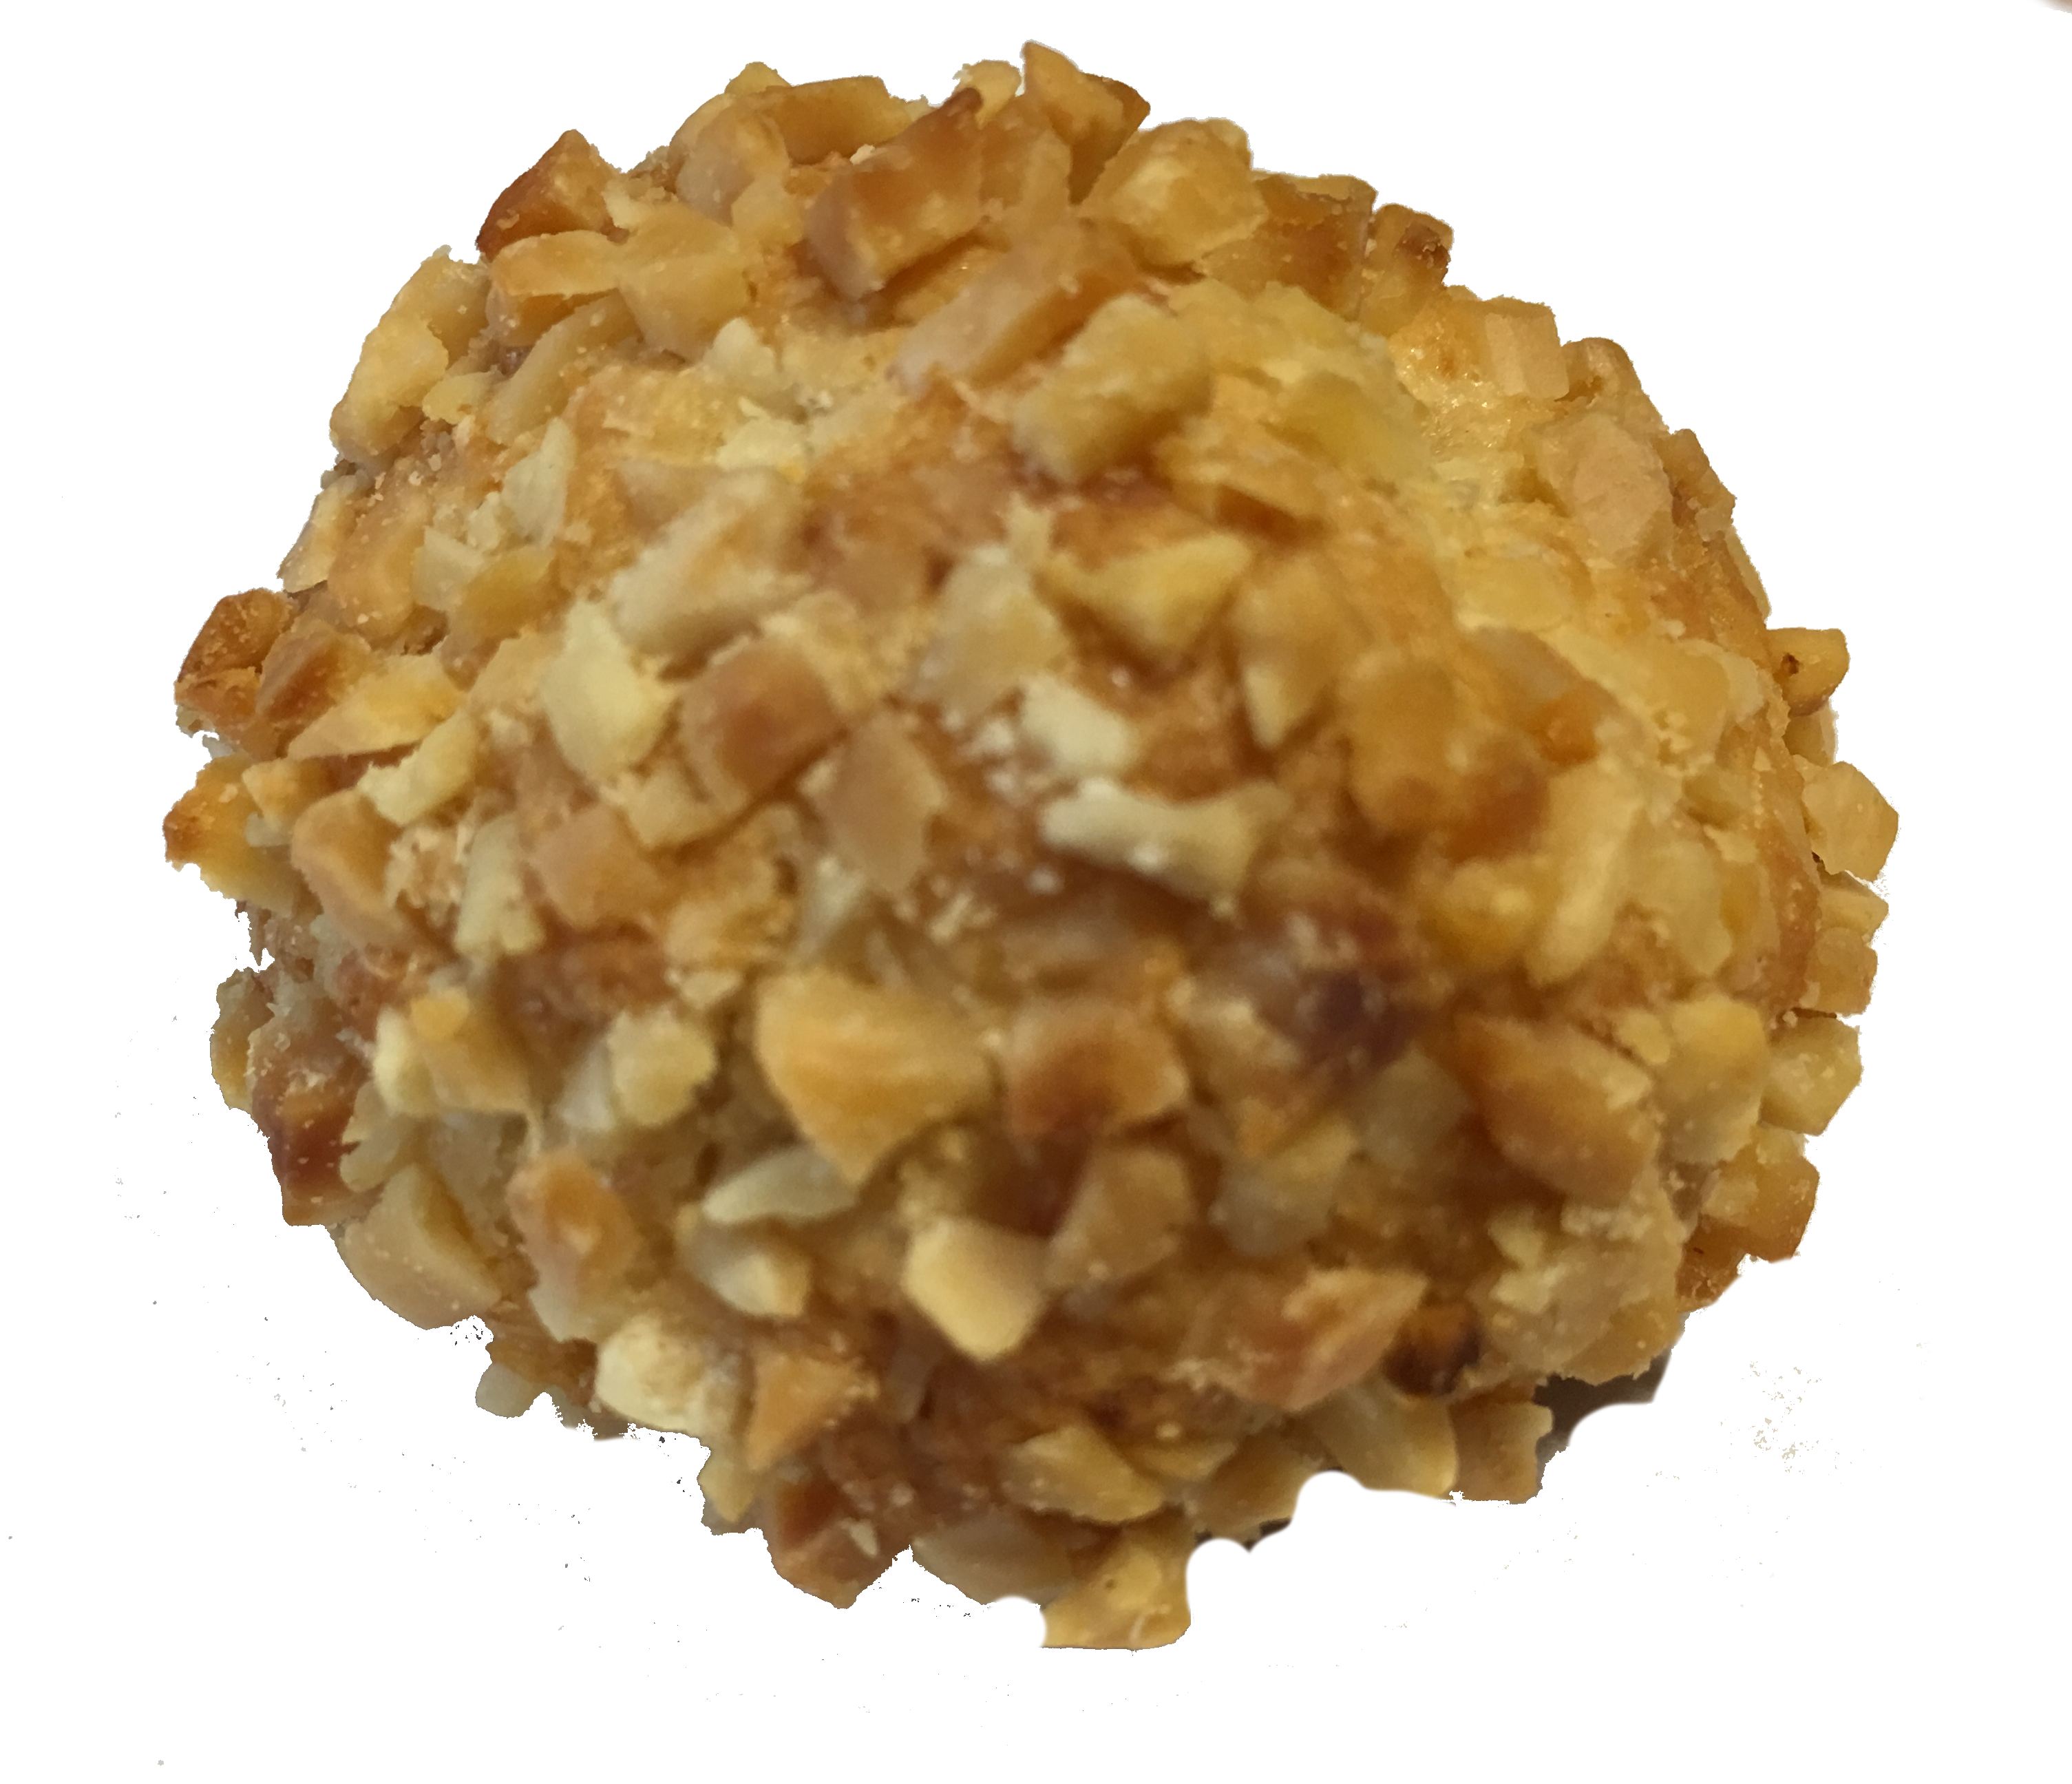 Ricoperto con Granella di mandorle - Covered with Almond Granules